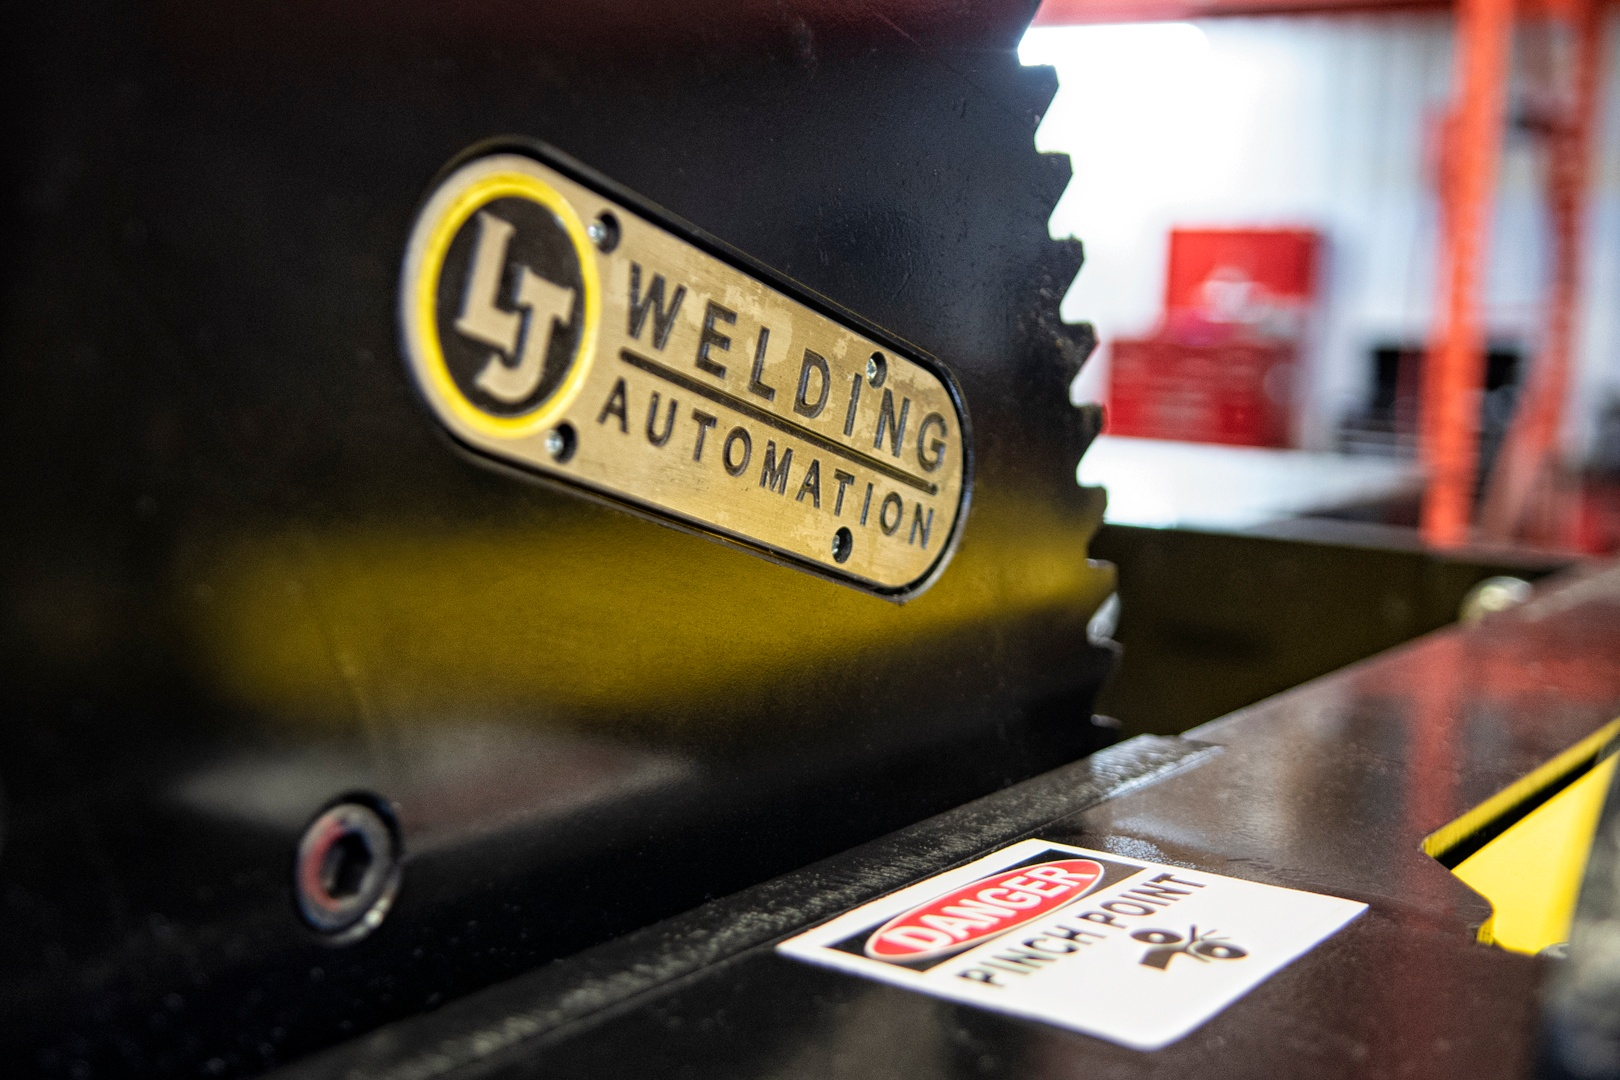 close up of lj welding logo on the gear tilt positioner